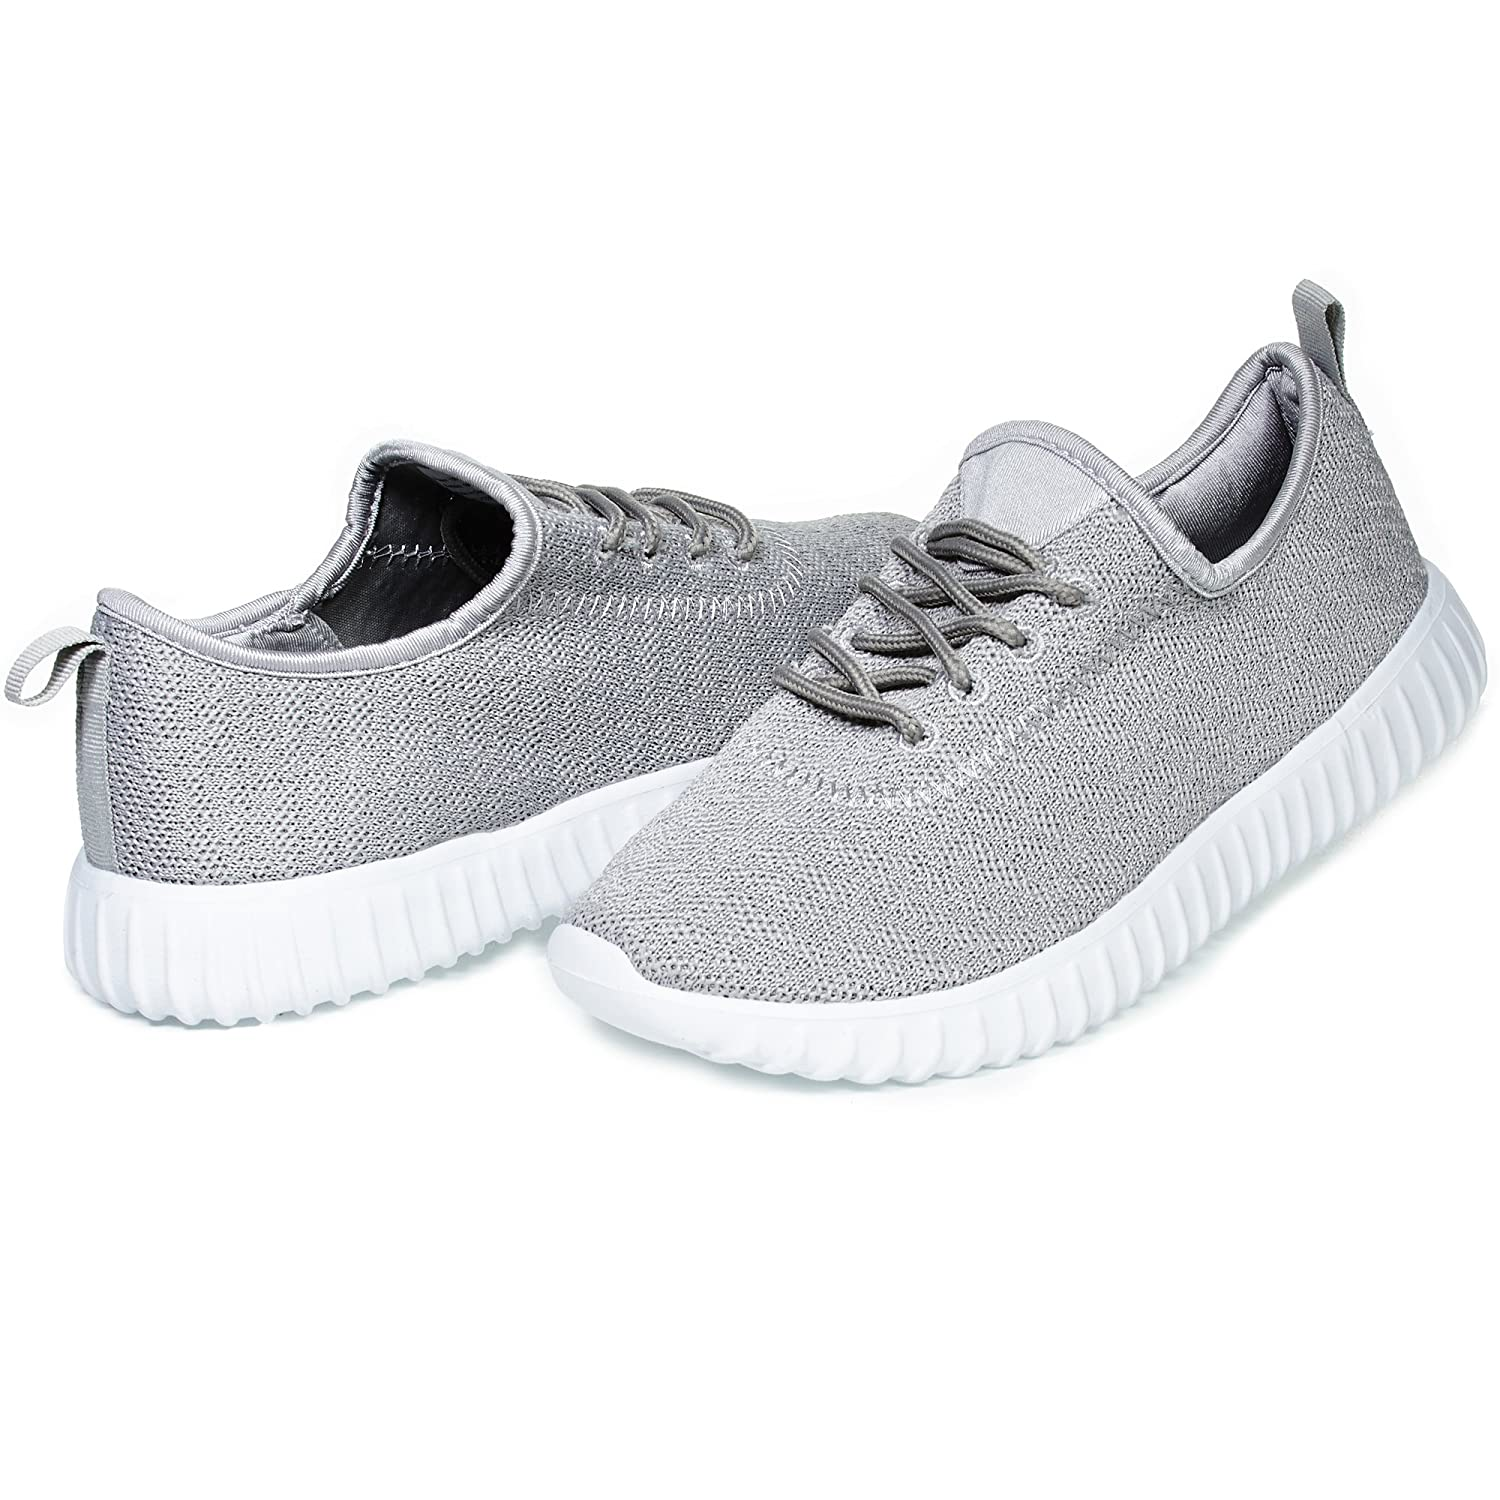 Chatties By Sara Z Womens Low Top Fashion Athletic Sneaker Shoes For Ladies Light Weight Running Walking Casual Shoes B07BB4JVYK 11 B(M) US|Grey